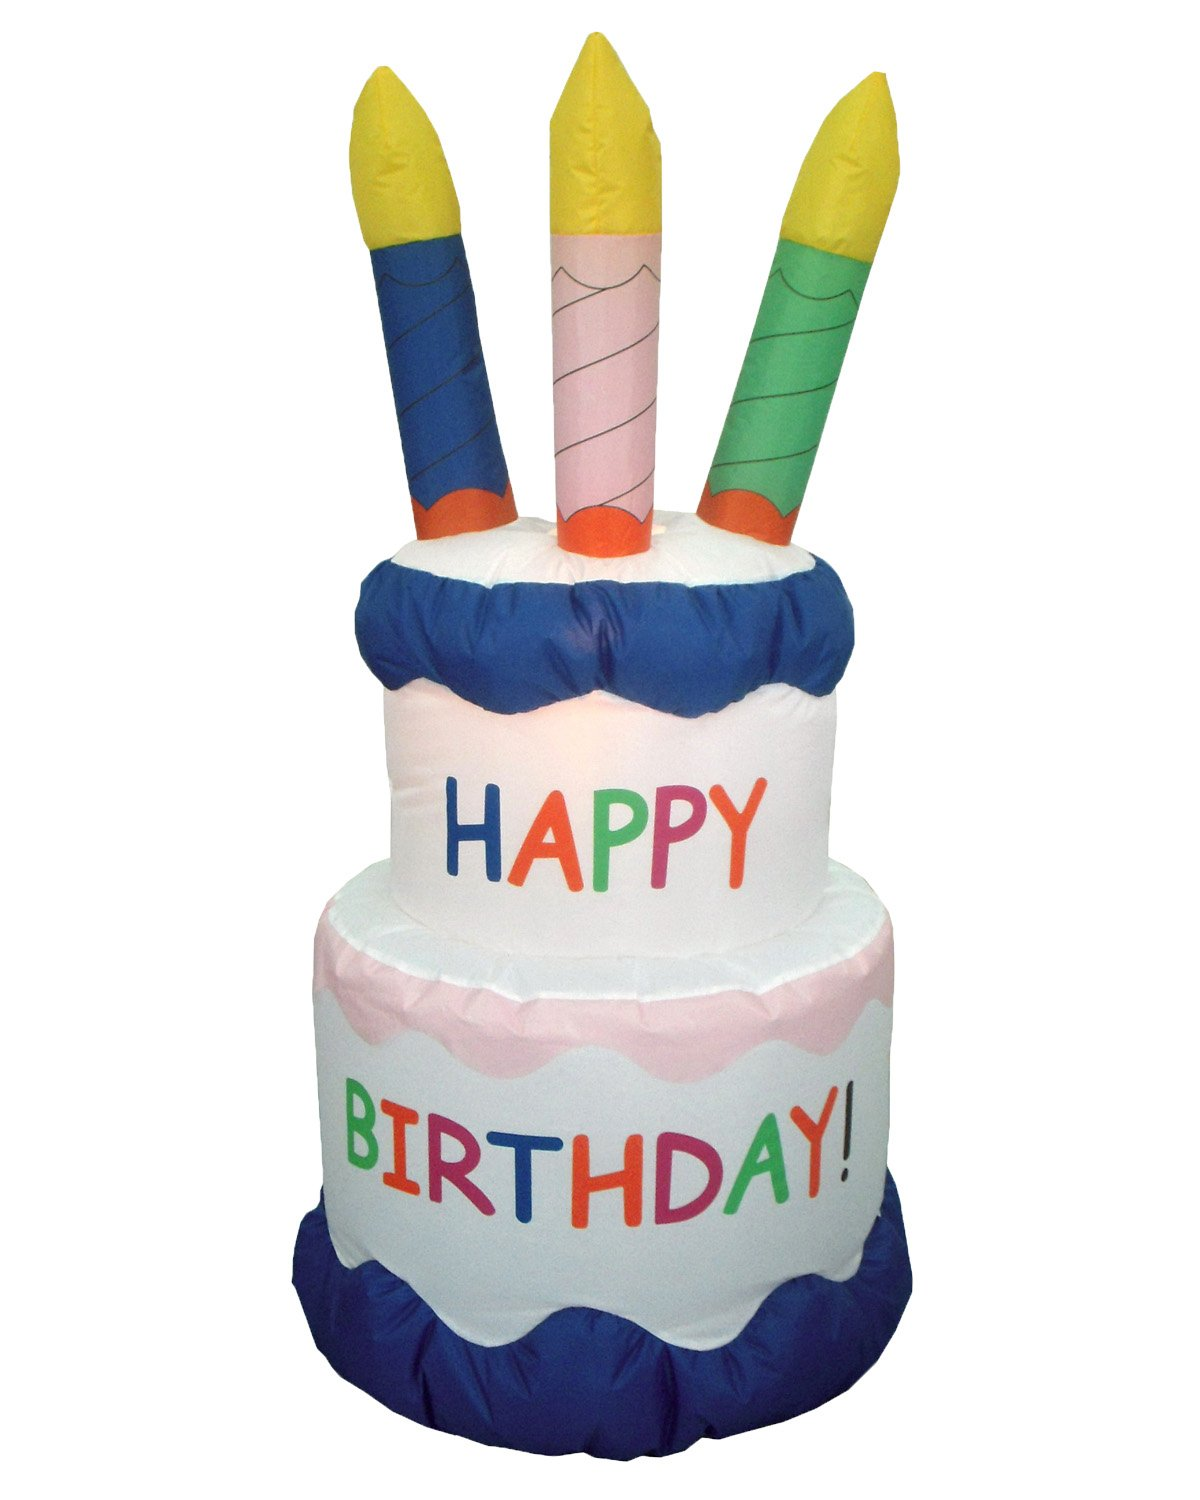 6 Foot Inflatable Happy Birthday Cake with Candles Yard Decoration by BZB Goods